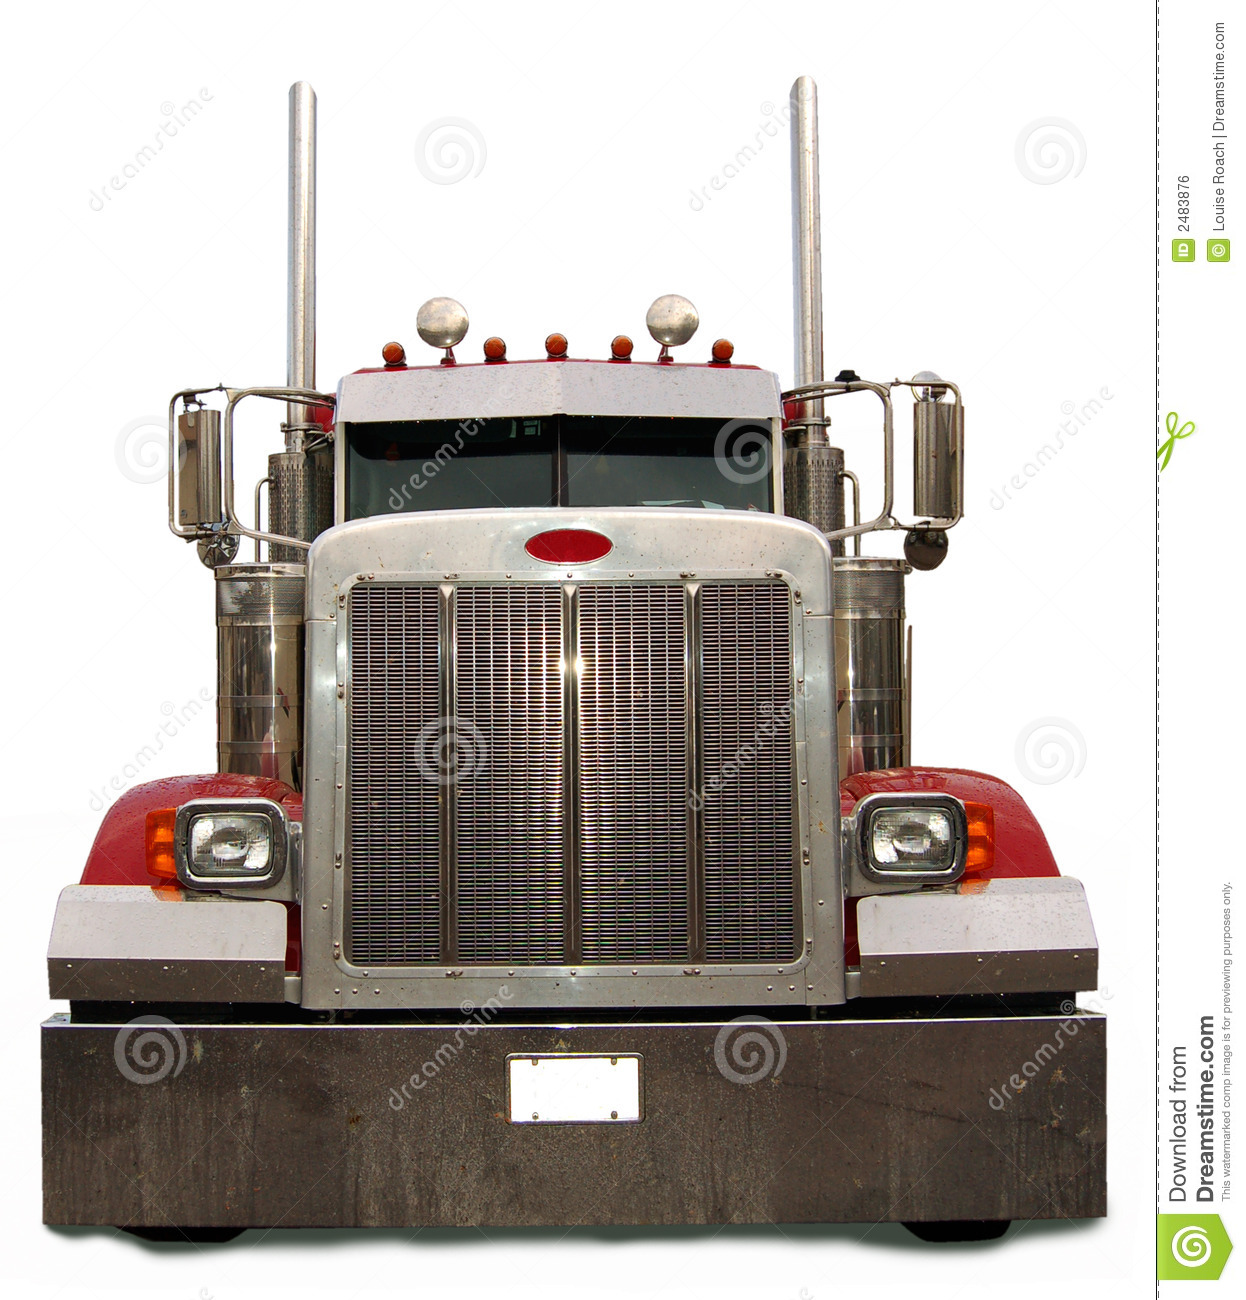 Make meme with Semi Truck Grill Clipart.